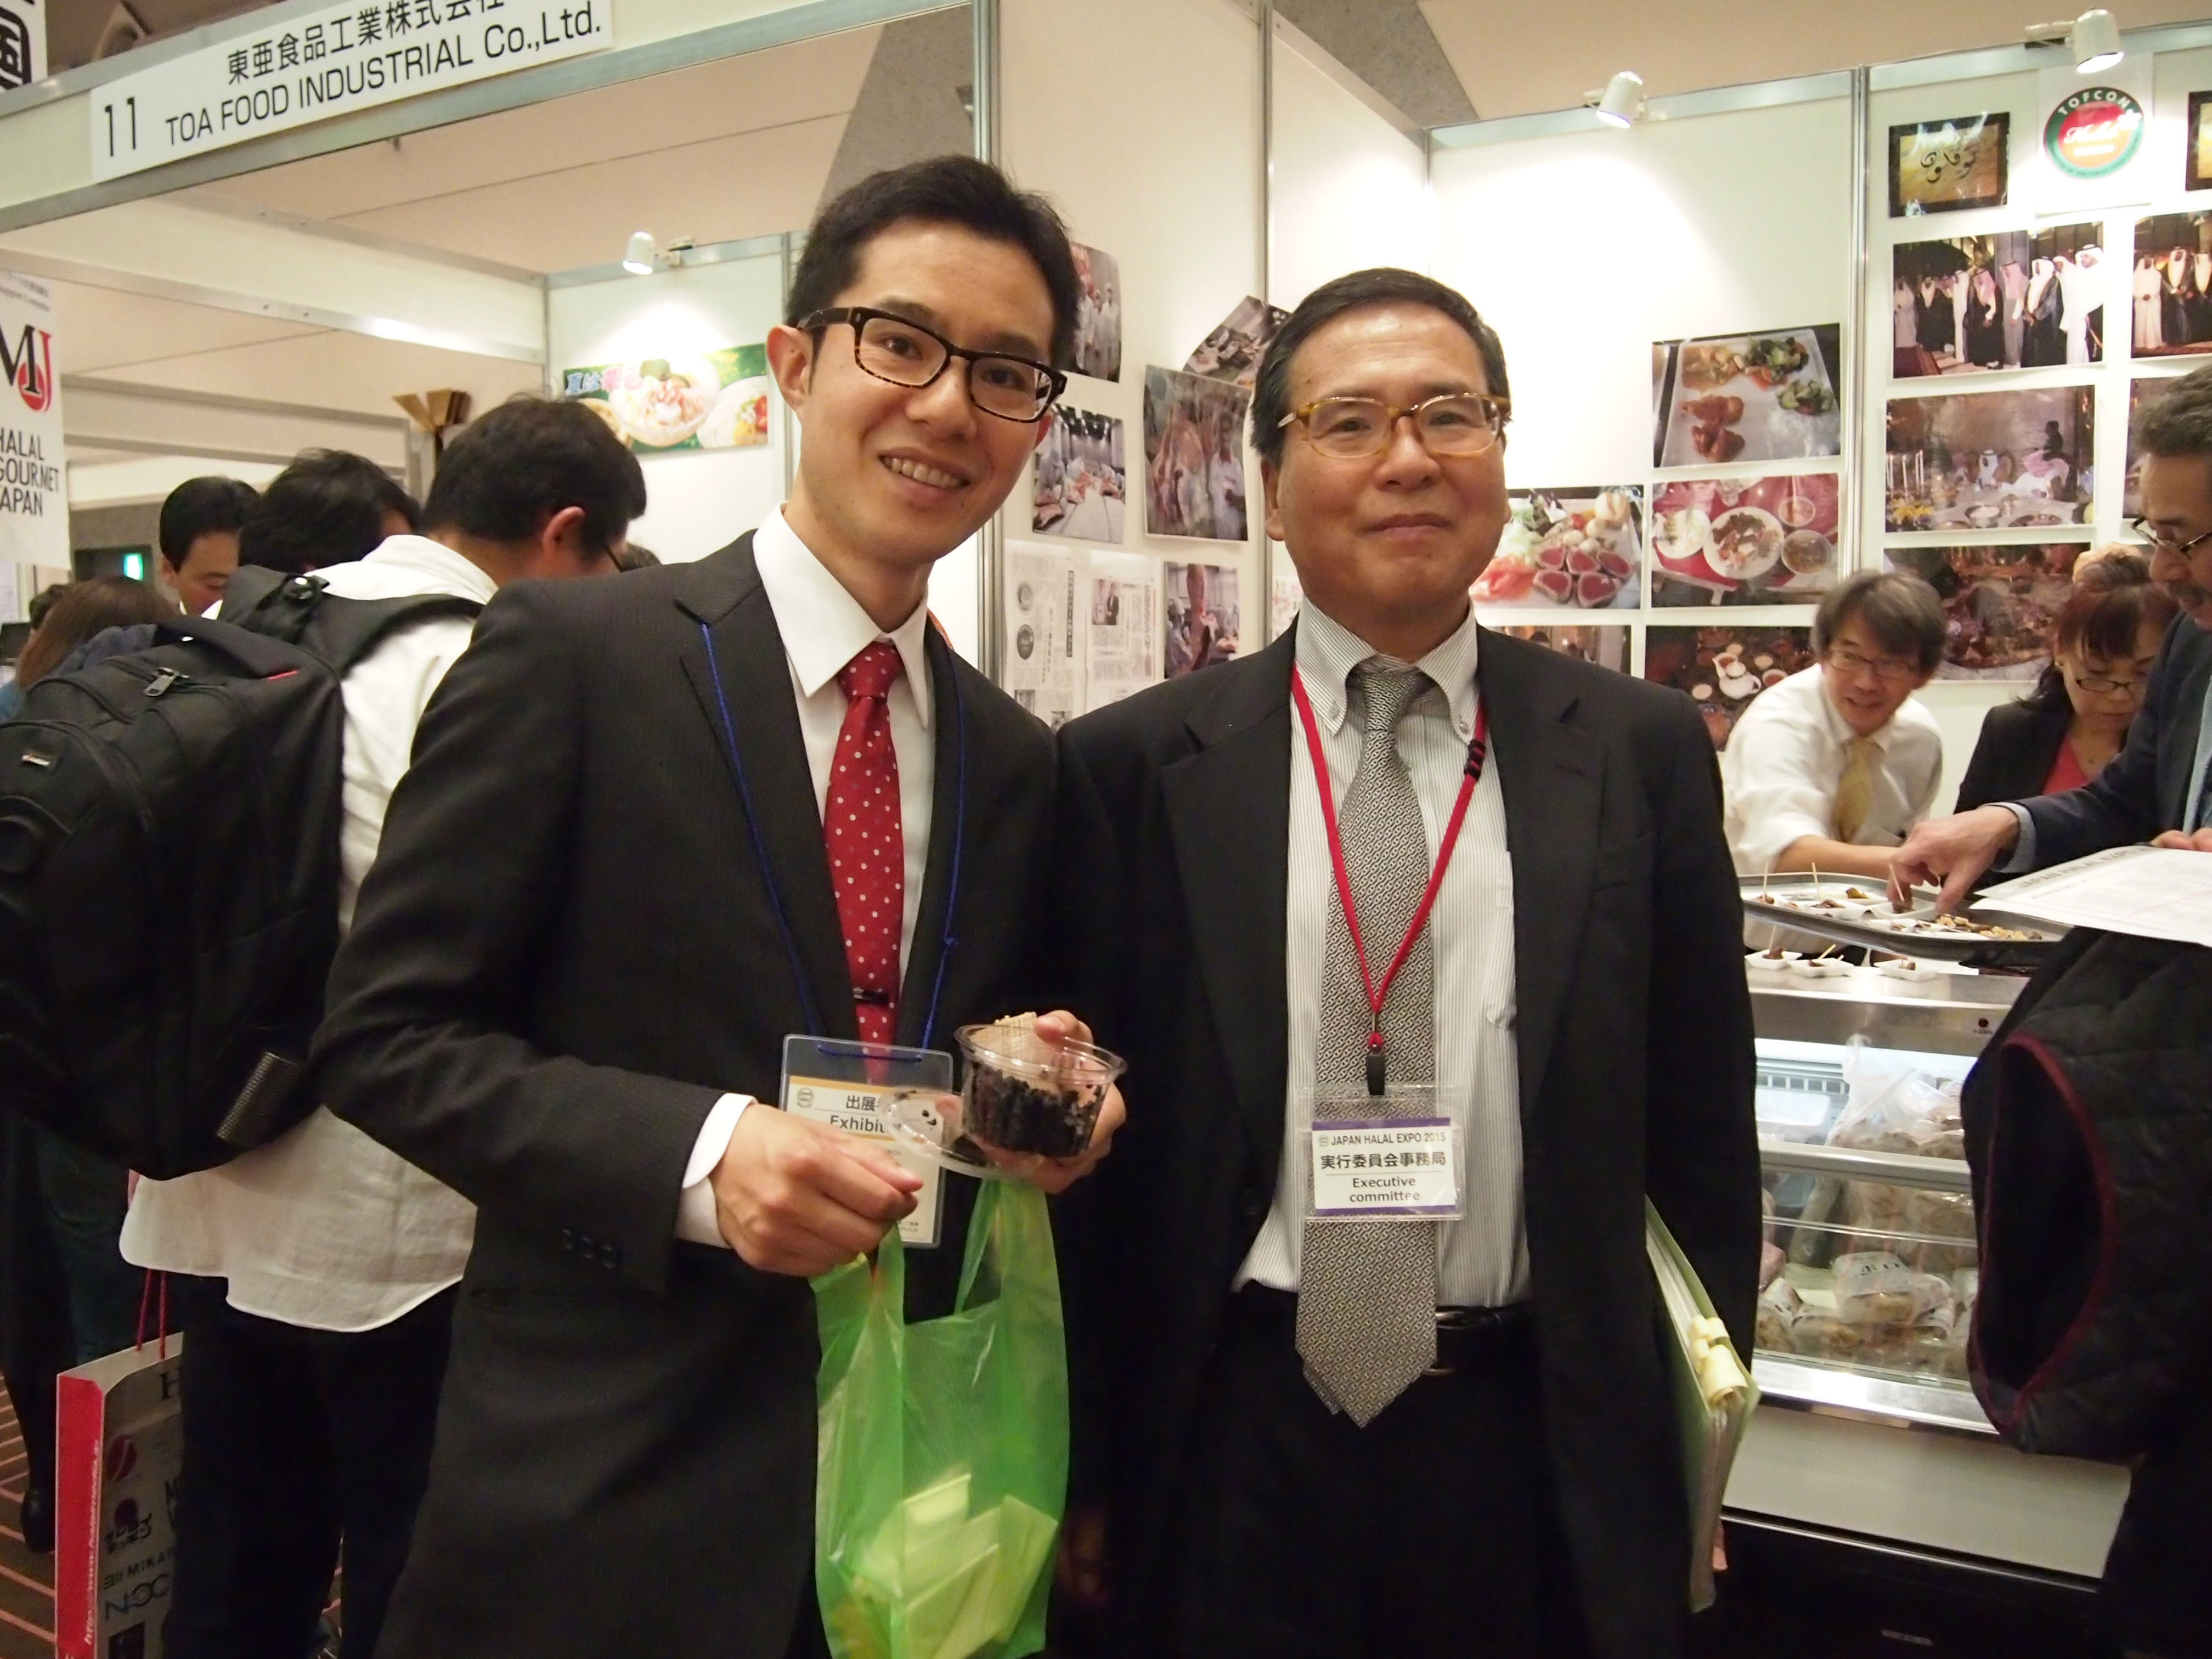 Yoshichika Terasawa (right), of the Japan Halal Expo 2015 executive committee and special advisor to Makuhari Messe Inc. poses with exhibitor Junya Machiya, president of Tenmabayashi Ryutukako from Aomori Prefecture at the event, which saw 67 exhibitors participate, at Makuhari Messe, Chiba Prefecture.   EDLEEN OTHMAN